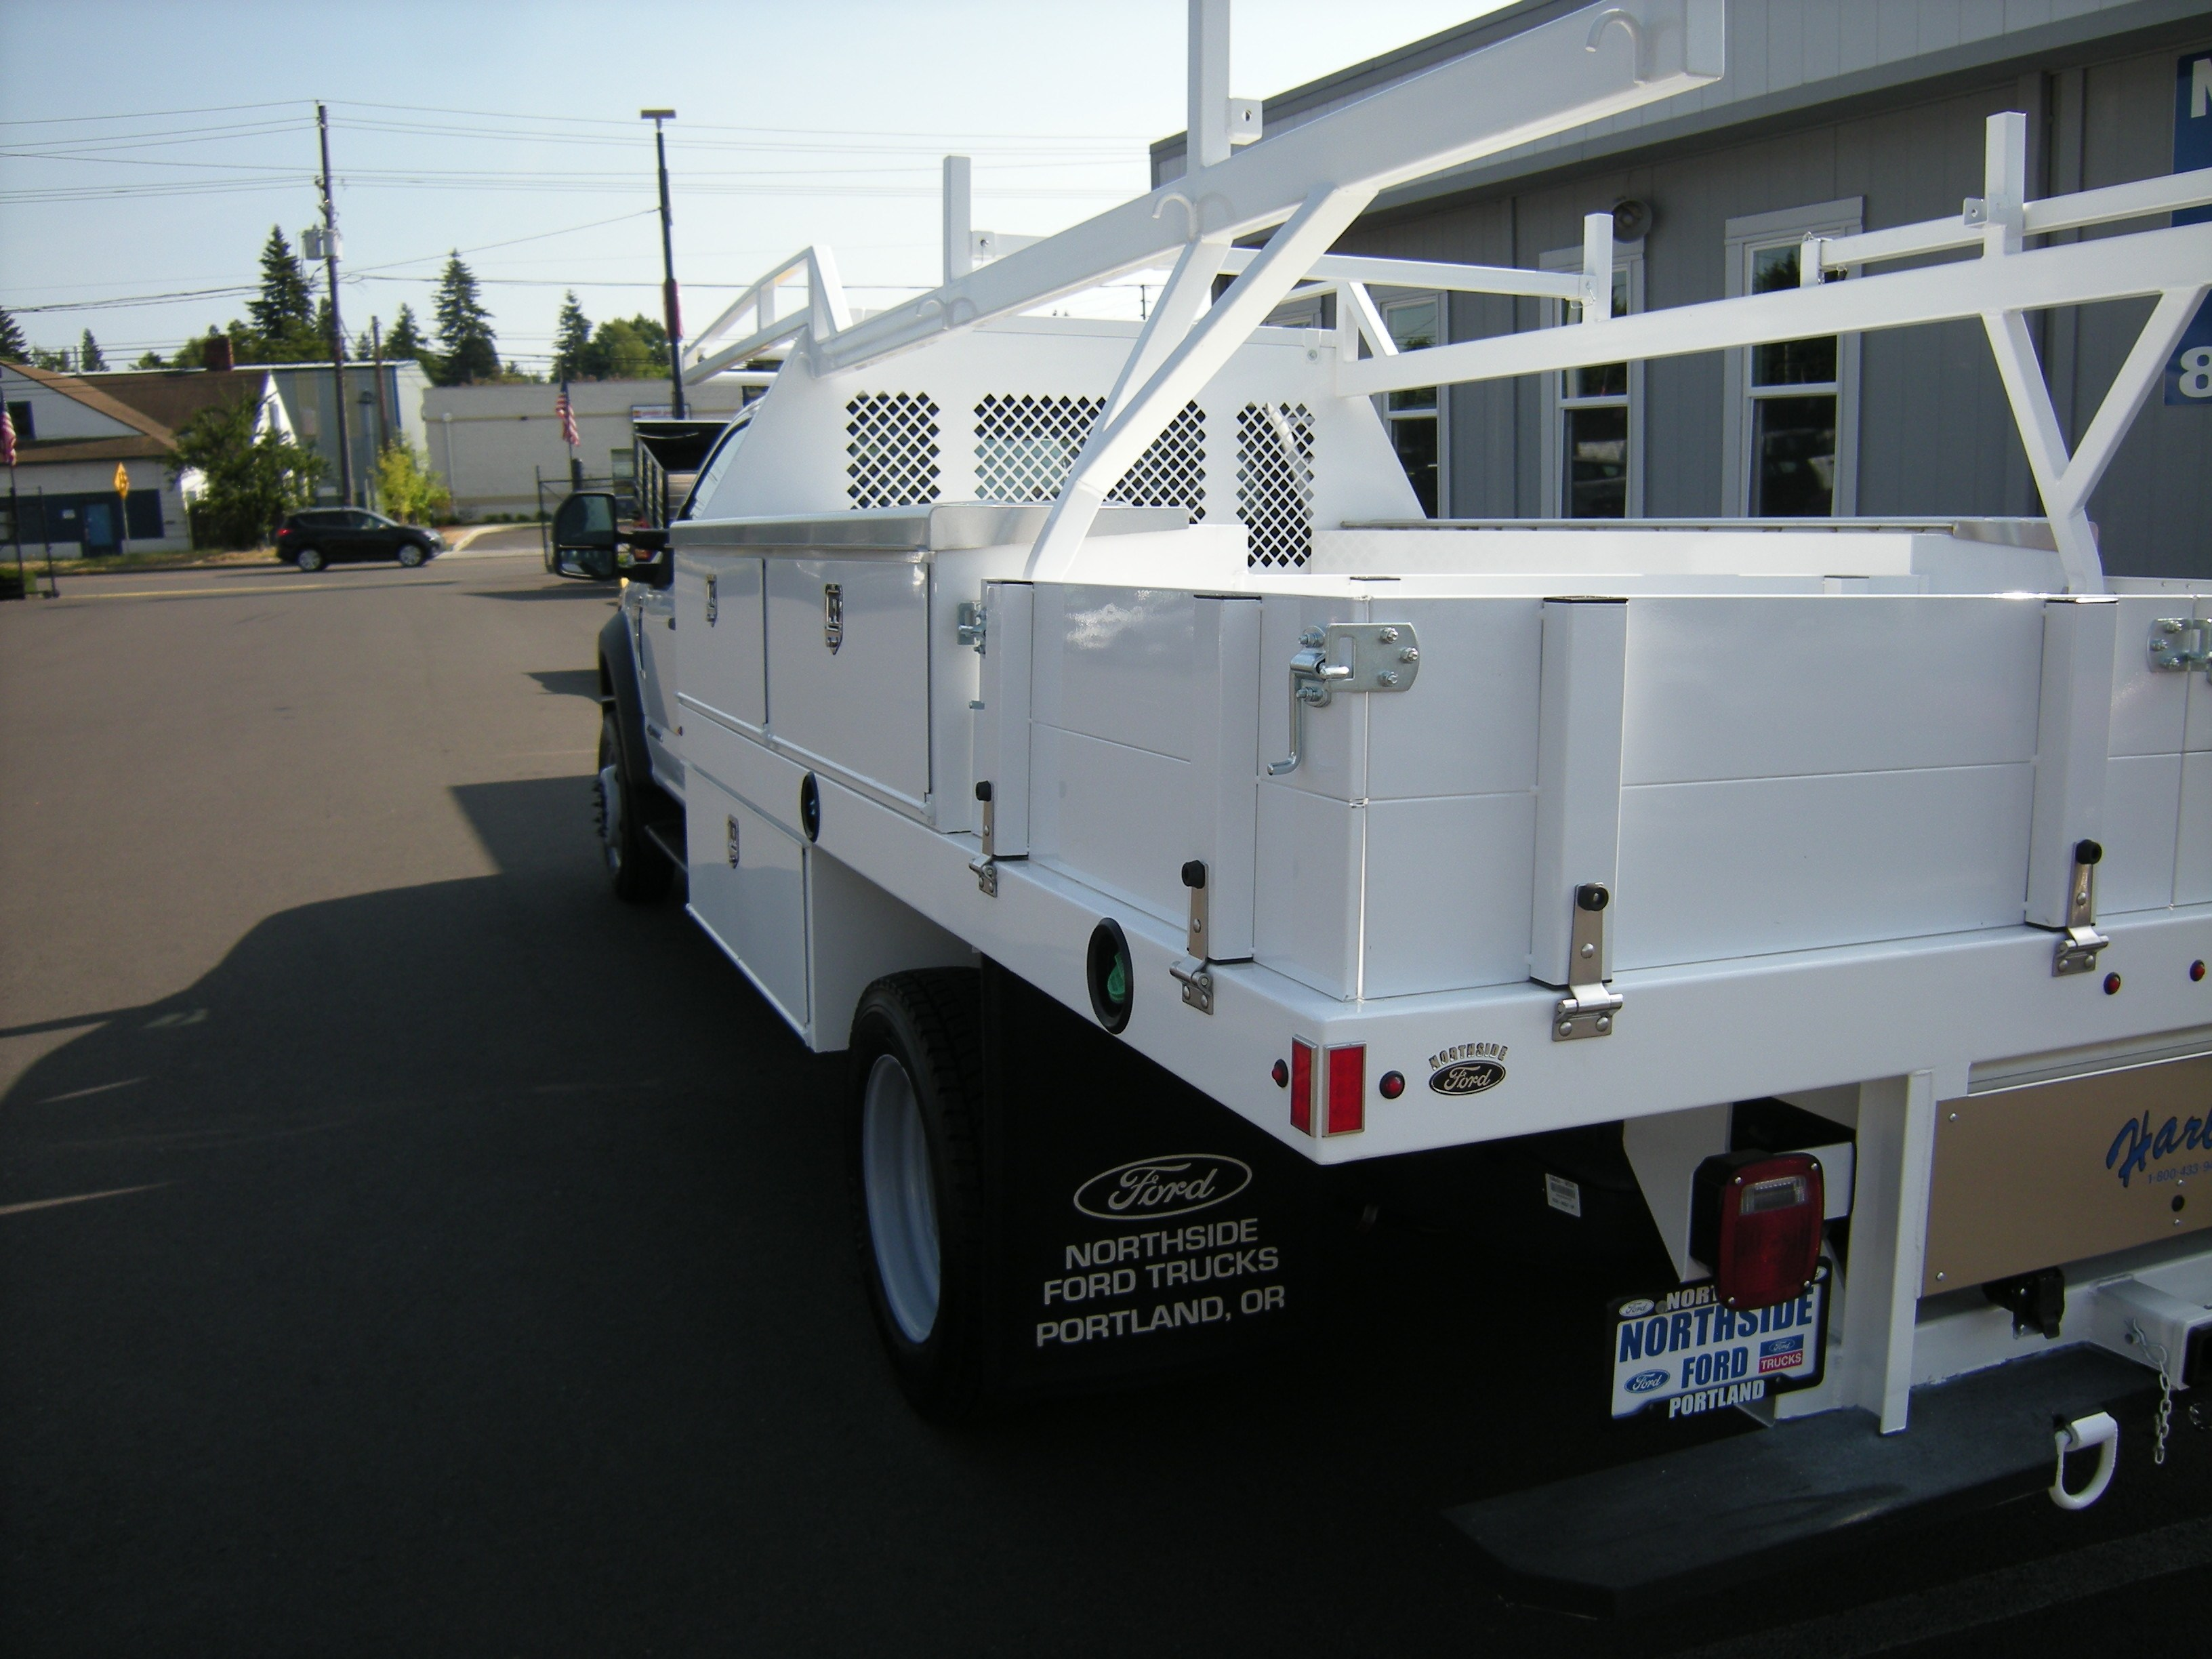 2018 F-450 Super Cab DRW,  Contractor Body #4685 - photo 2